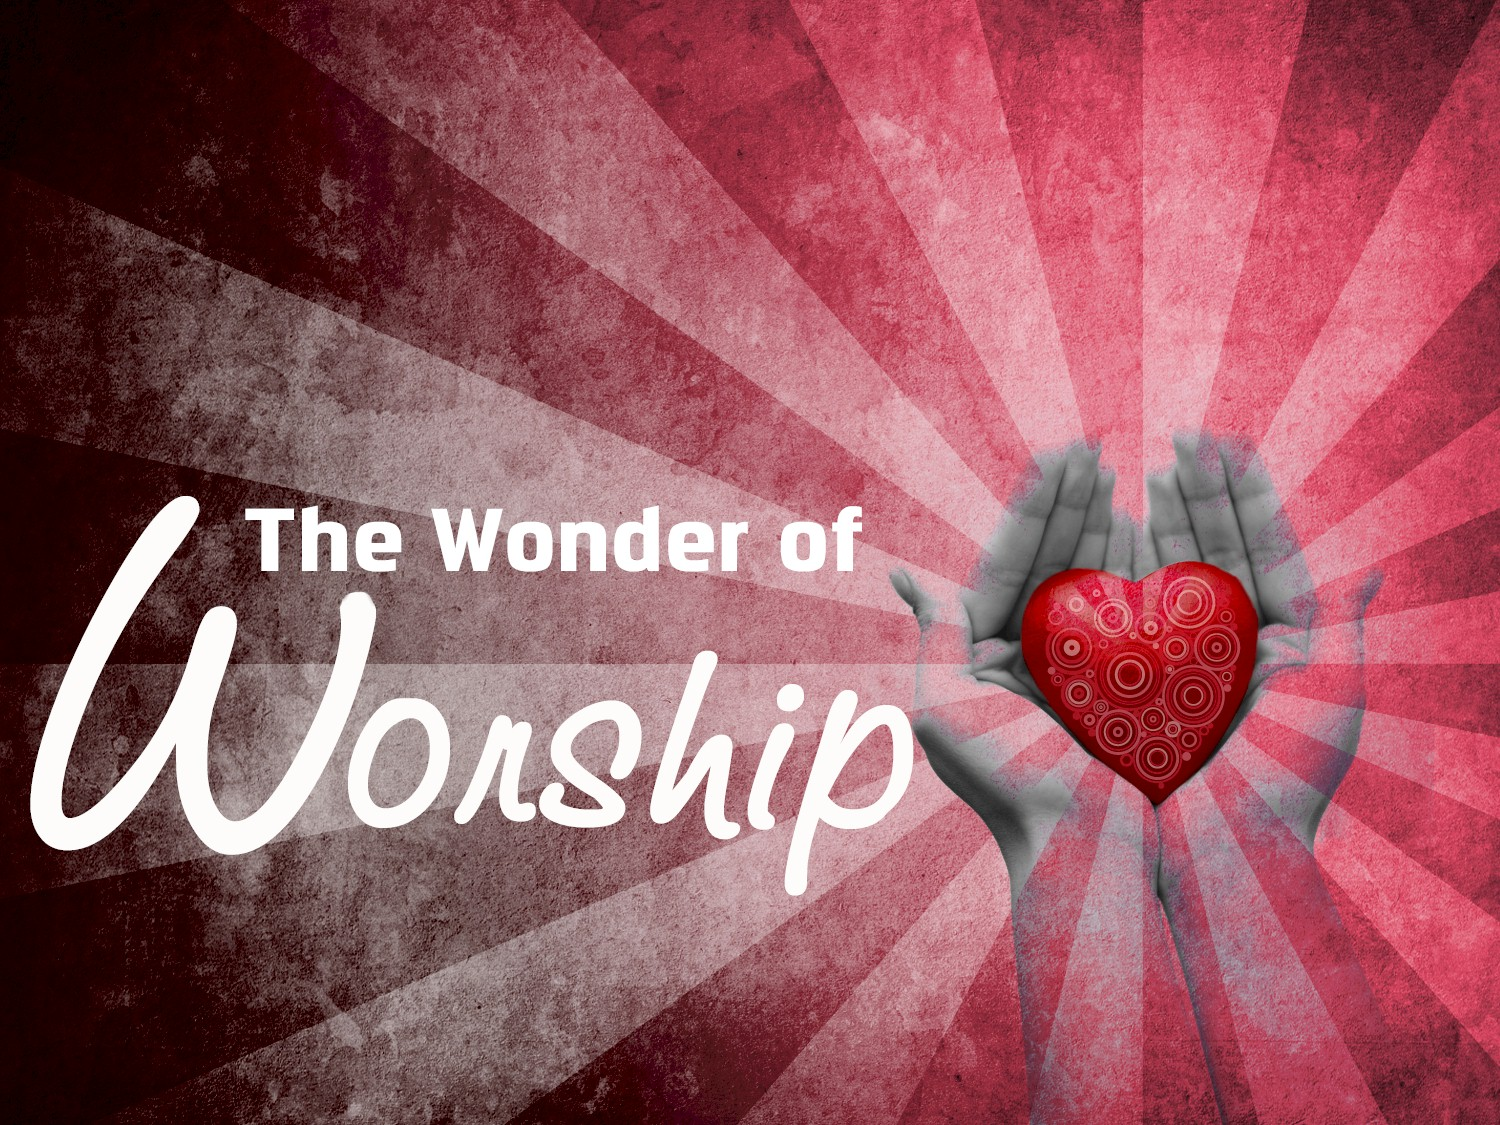 Christian Graphic Worship Wallpaper   Christian Wallpapers and 1500x1125